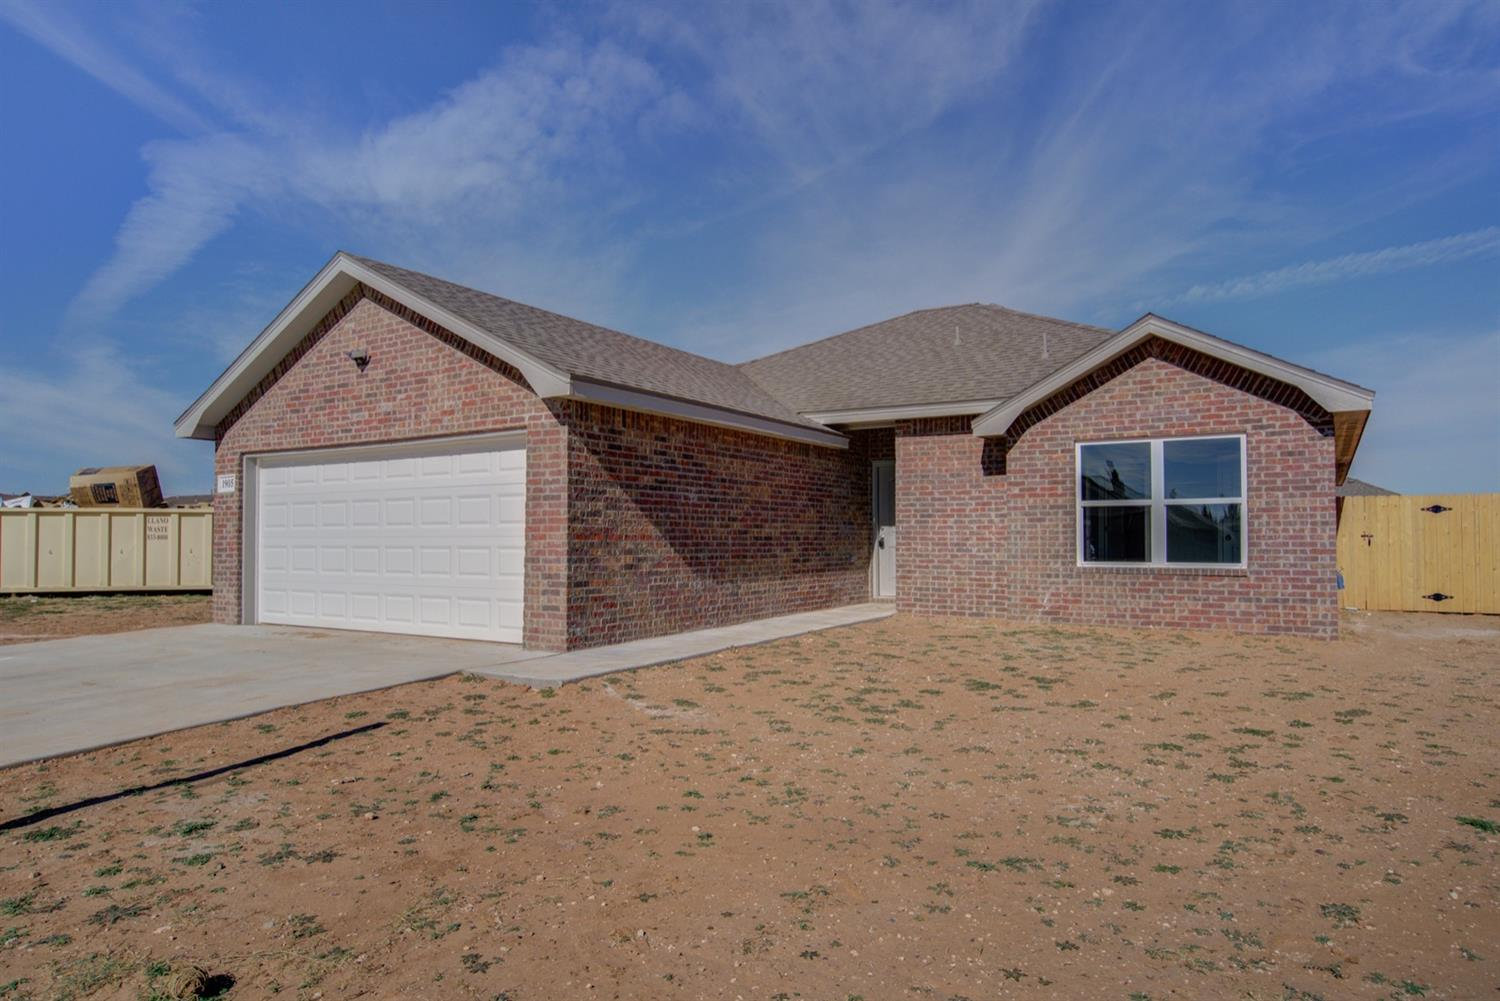 Brand new 3/2/2 built by Mission Homes. The well appointed kitchen will have granite counters & appliances. This well designed plan offers a spacious Master along with 2 additional bedrooms. You'll also enjoy vinyl plank flooring throughout. Buyers can still pick out paint colors, flooring etc. if contract brought quickly. Photos show what home will look like when completed. Mission Homes founder, Lal Williams, has more than 10 years experience in construction and is now bringing his passion for construction and mission work to the home building industry.